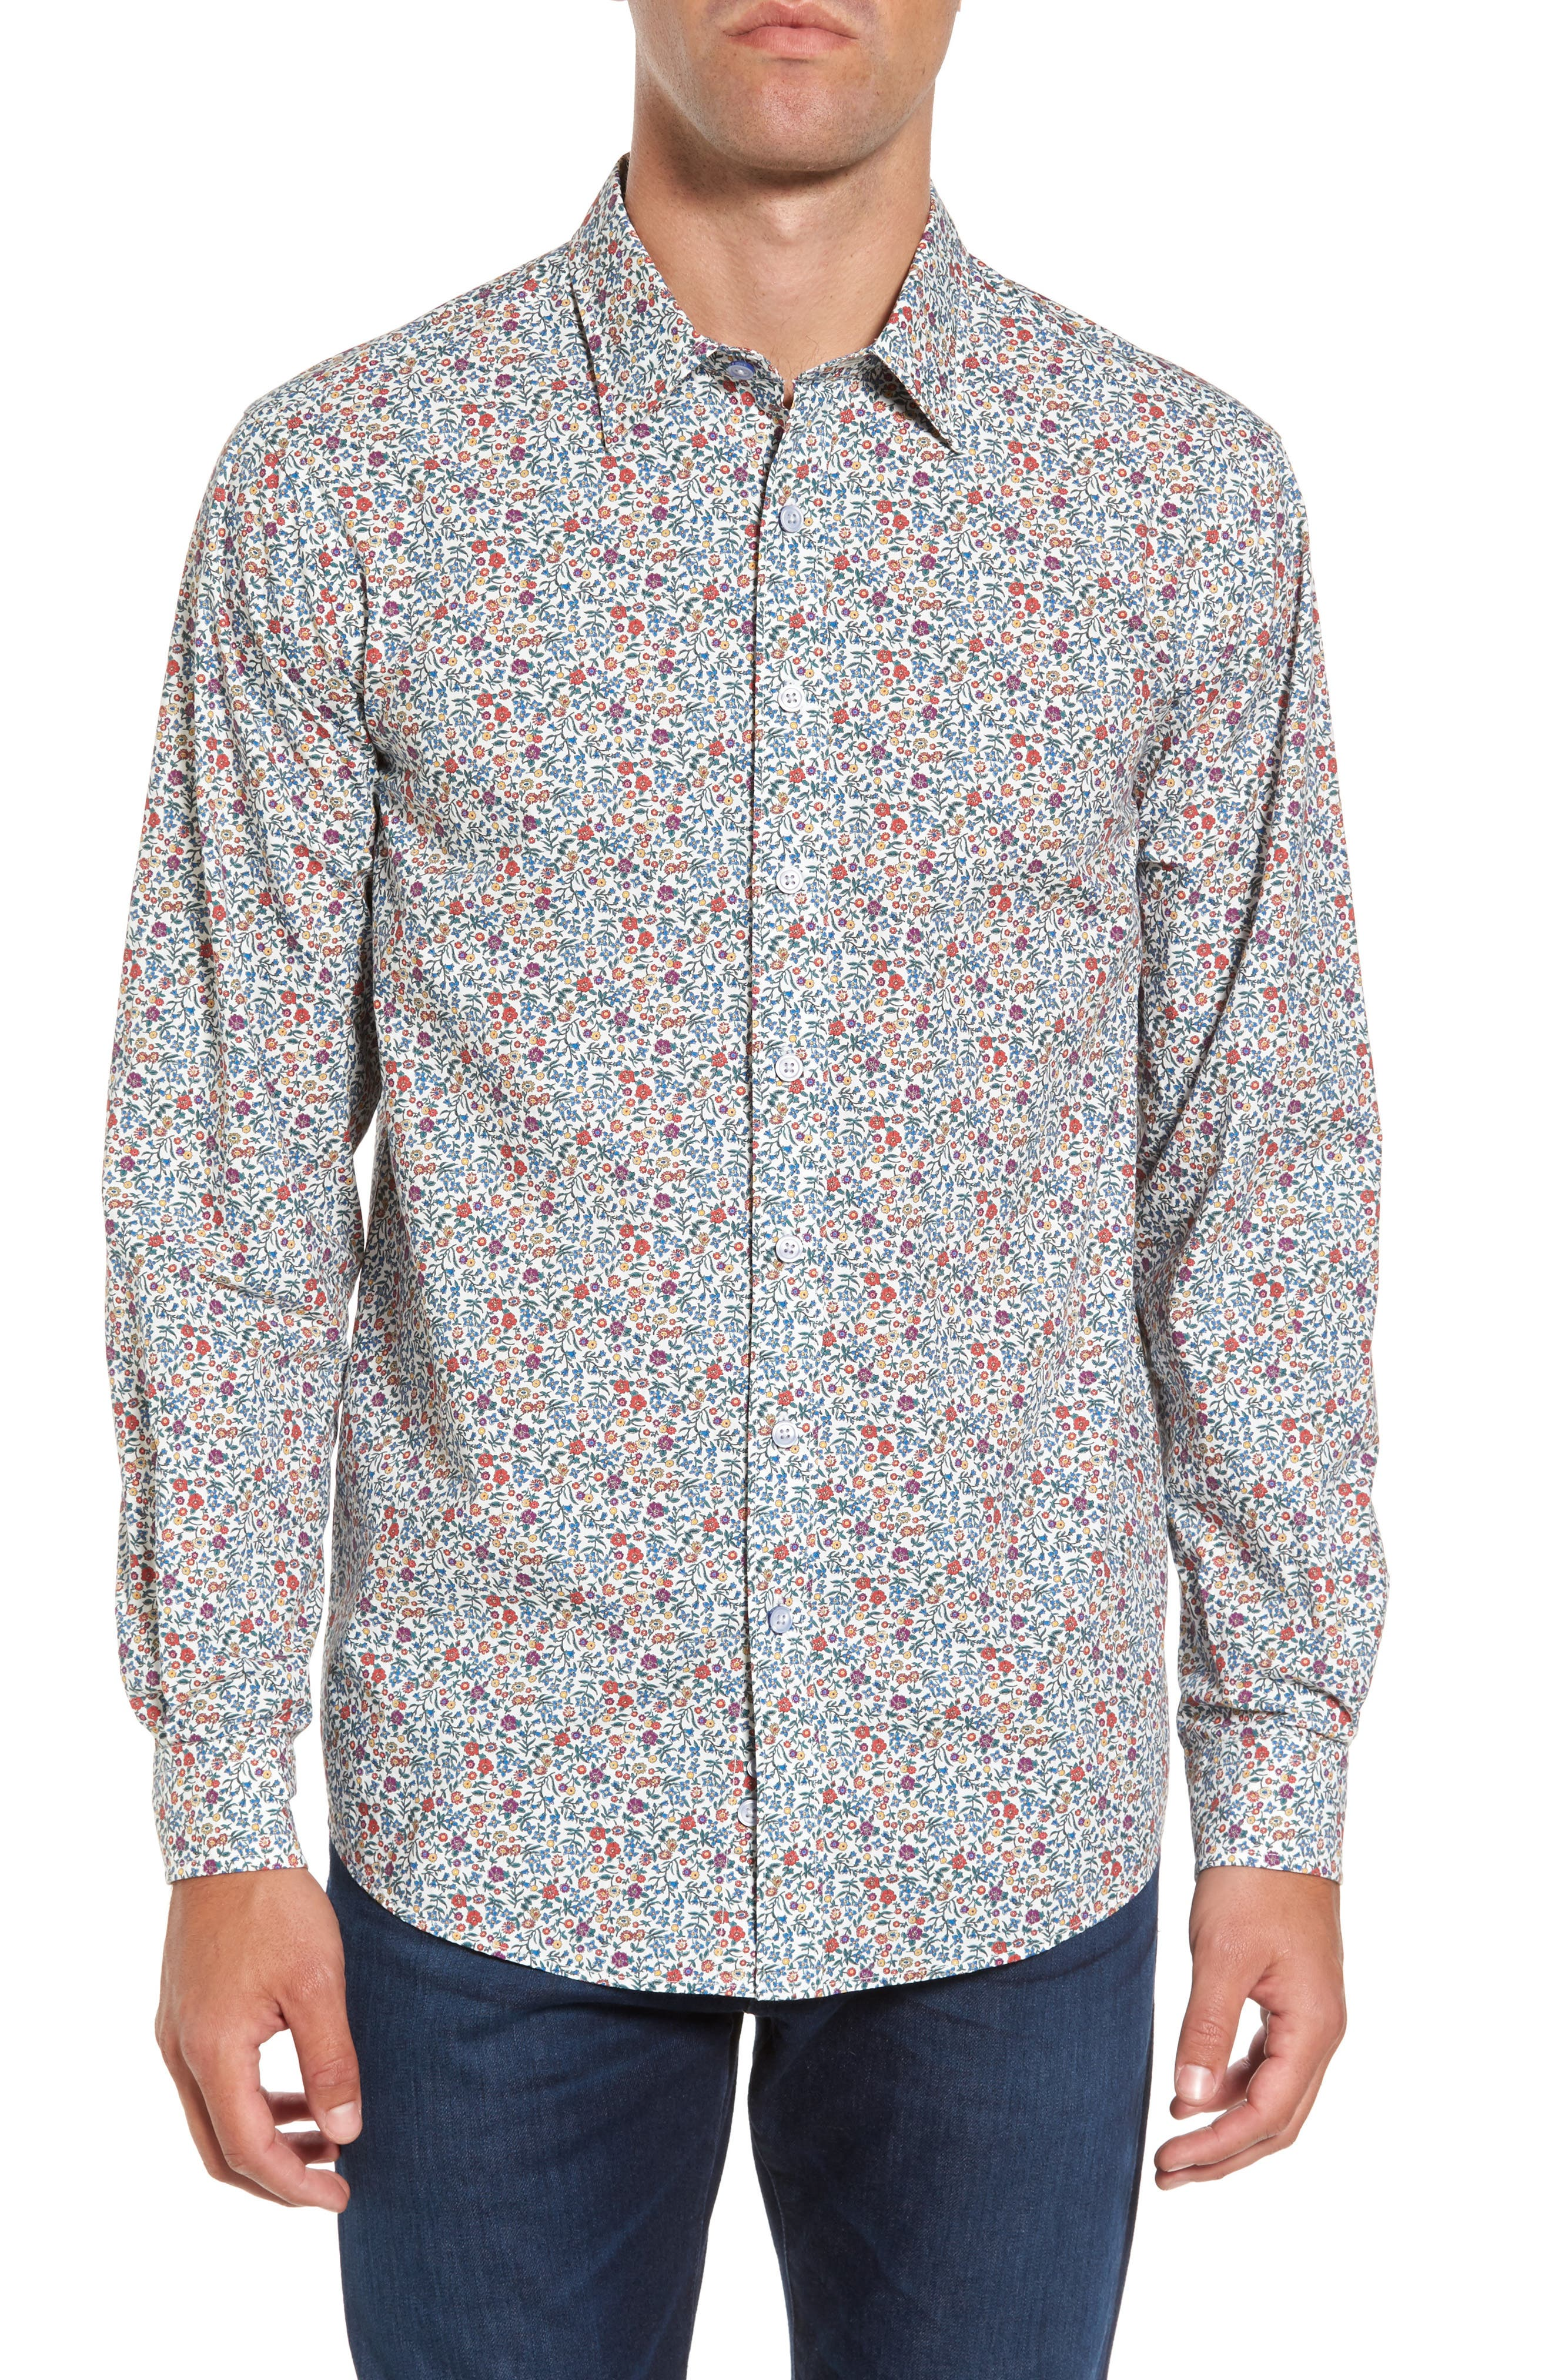 Cowes Bay Regular Fit Floral Sport Shirt,                             Main thumbnail 1, color,                             Botanical